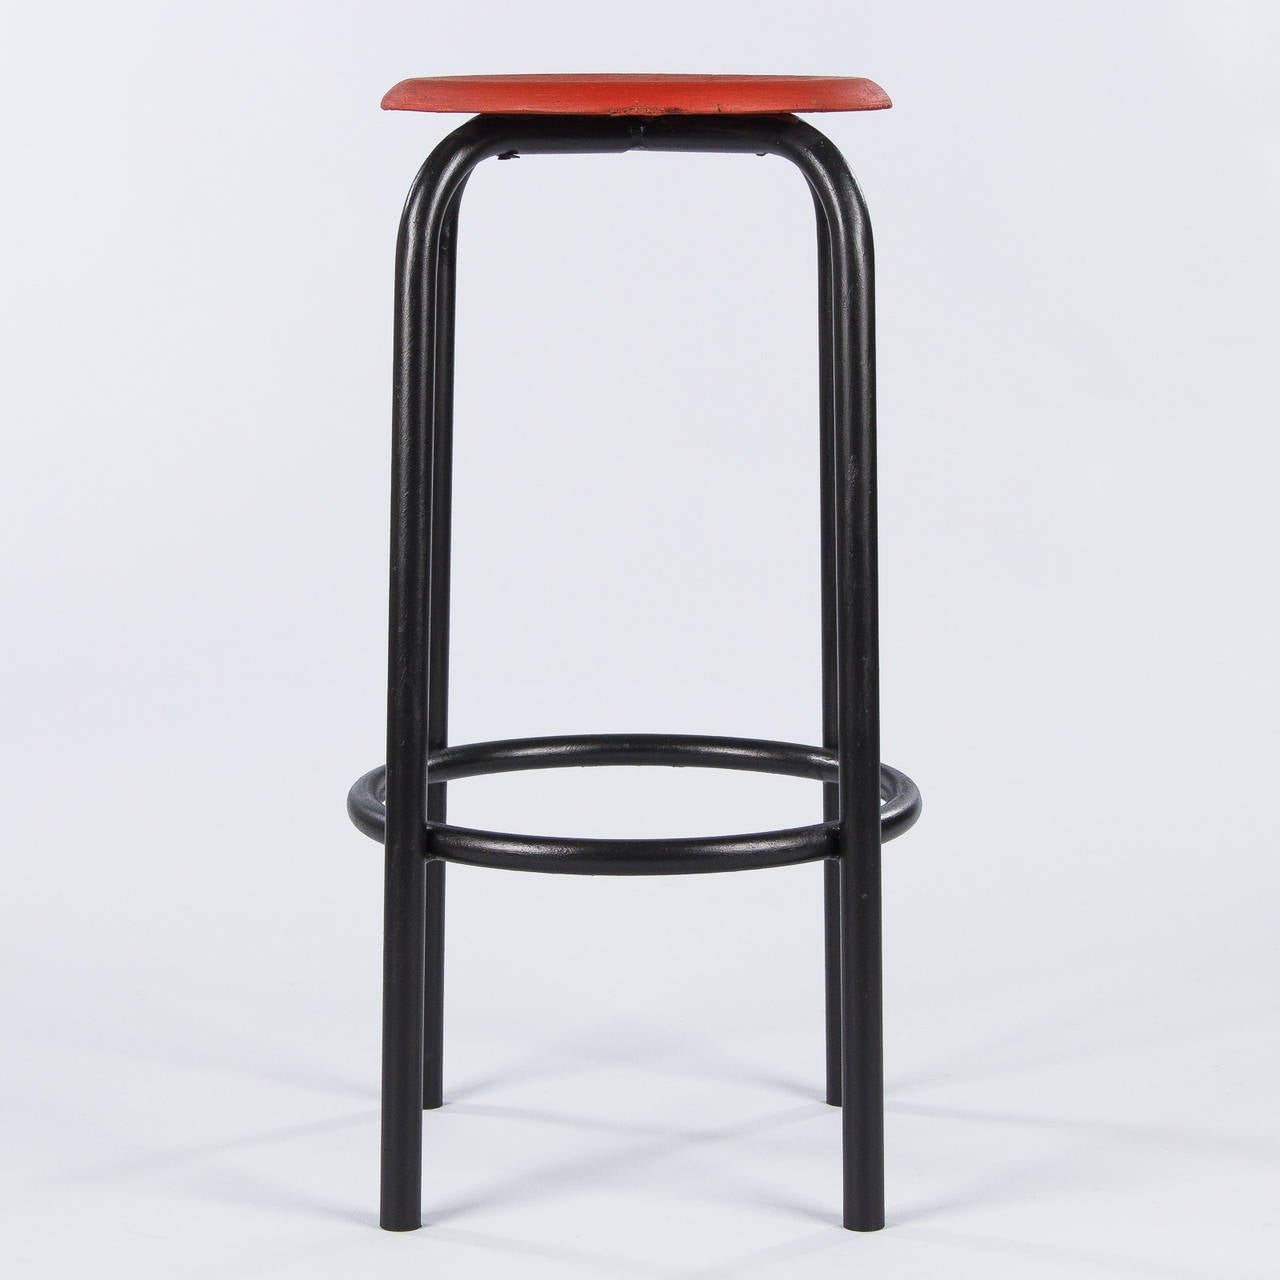 French Vintage Industrial Red and Black Stool, 1950s 4